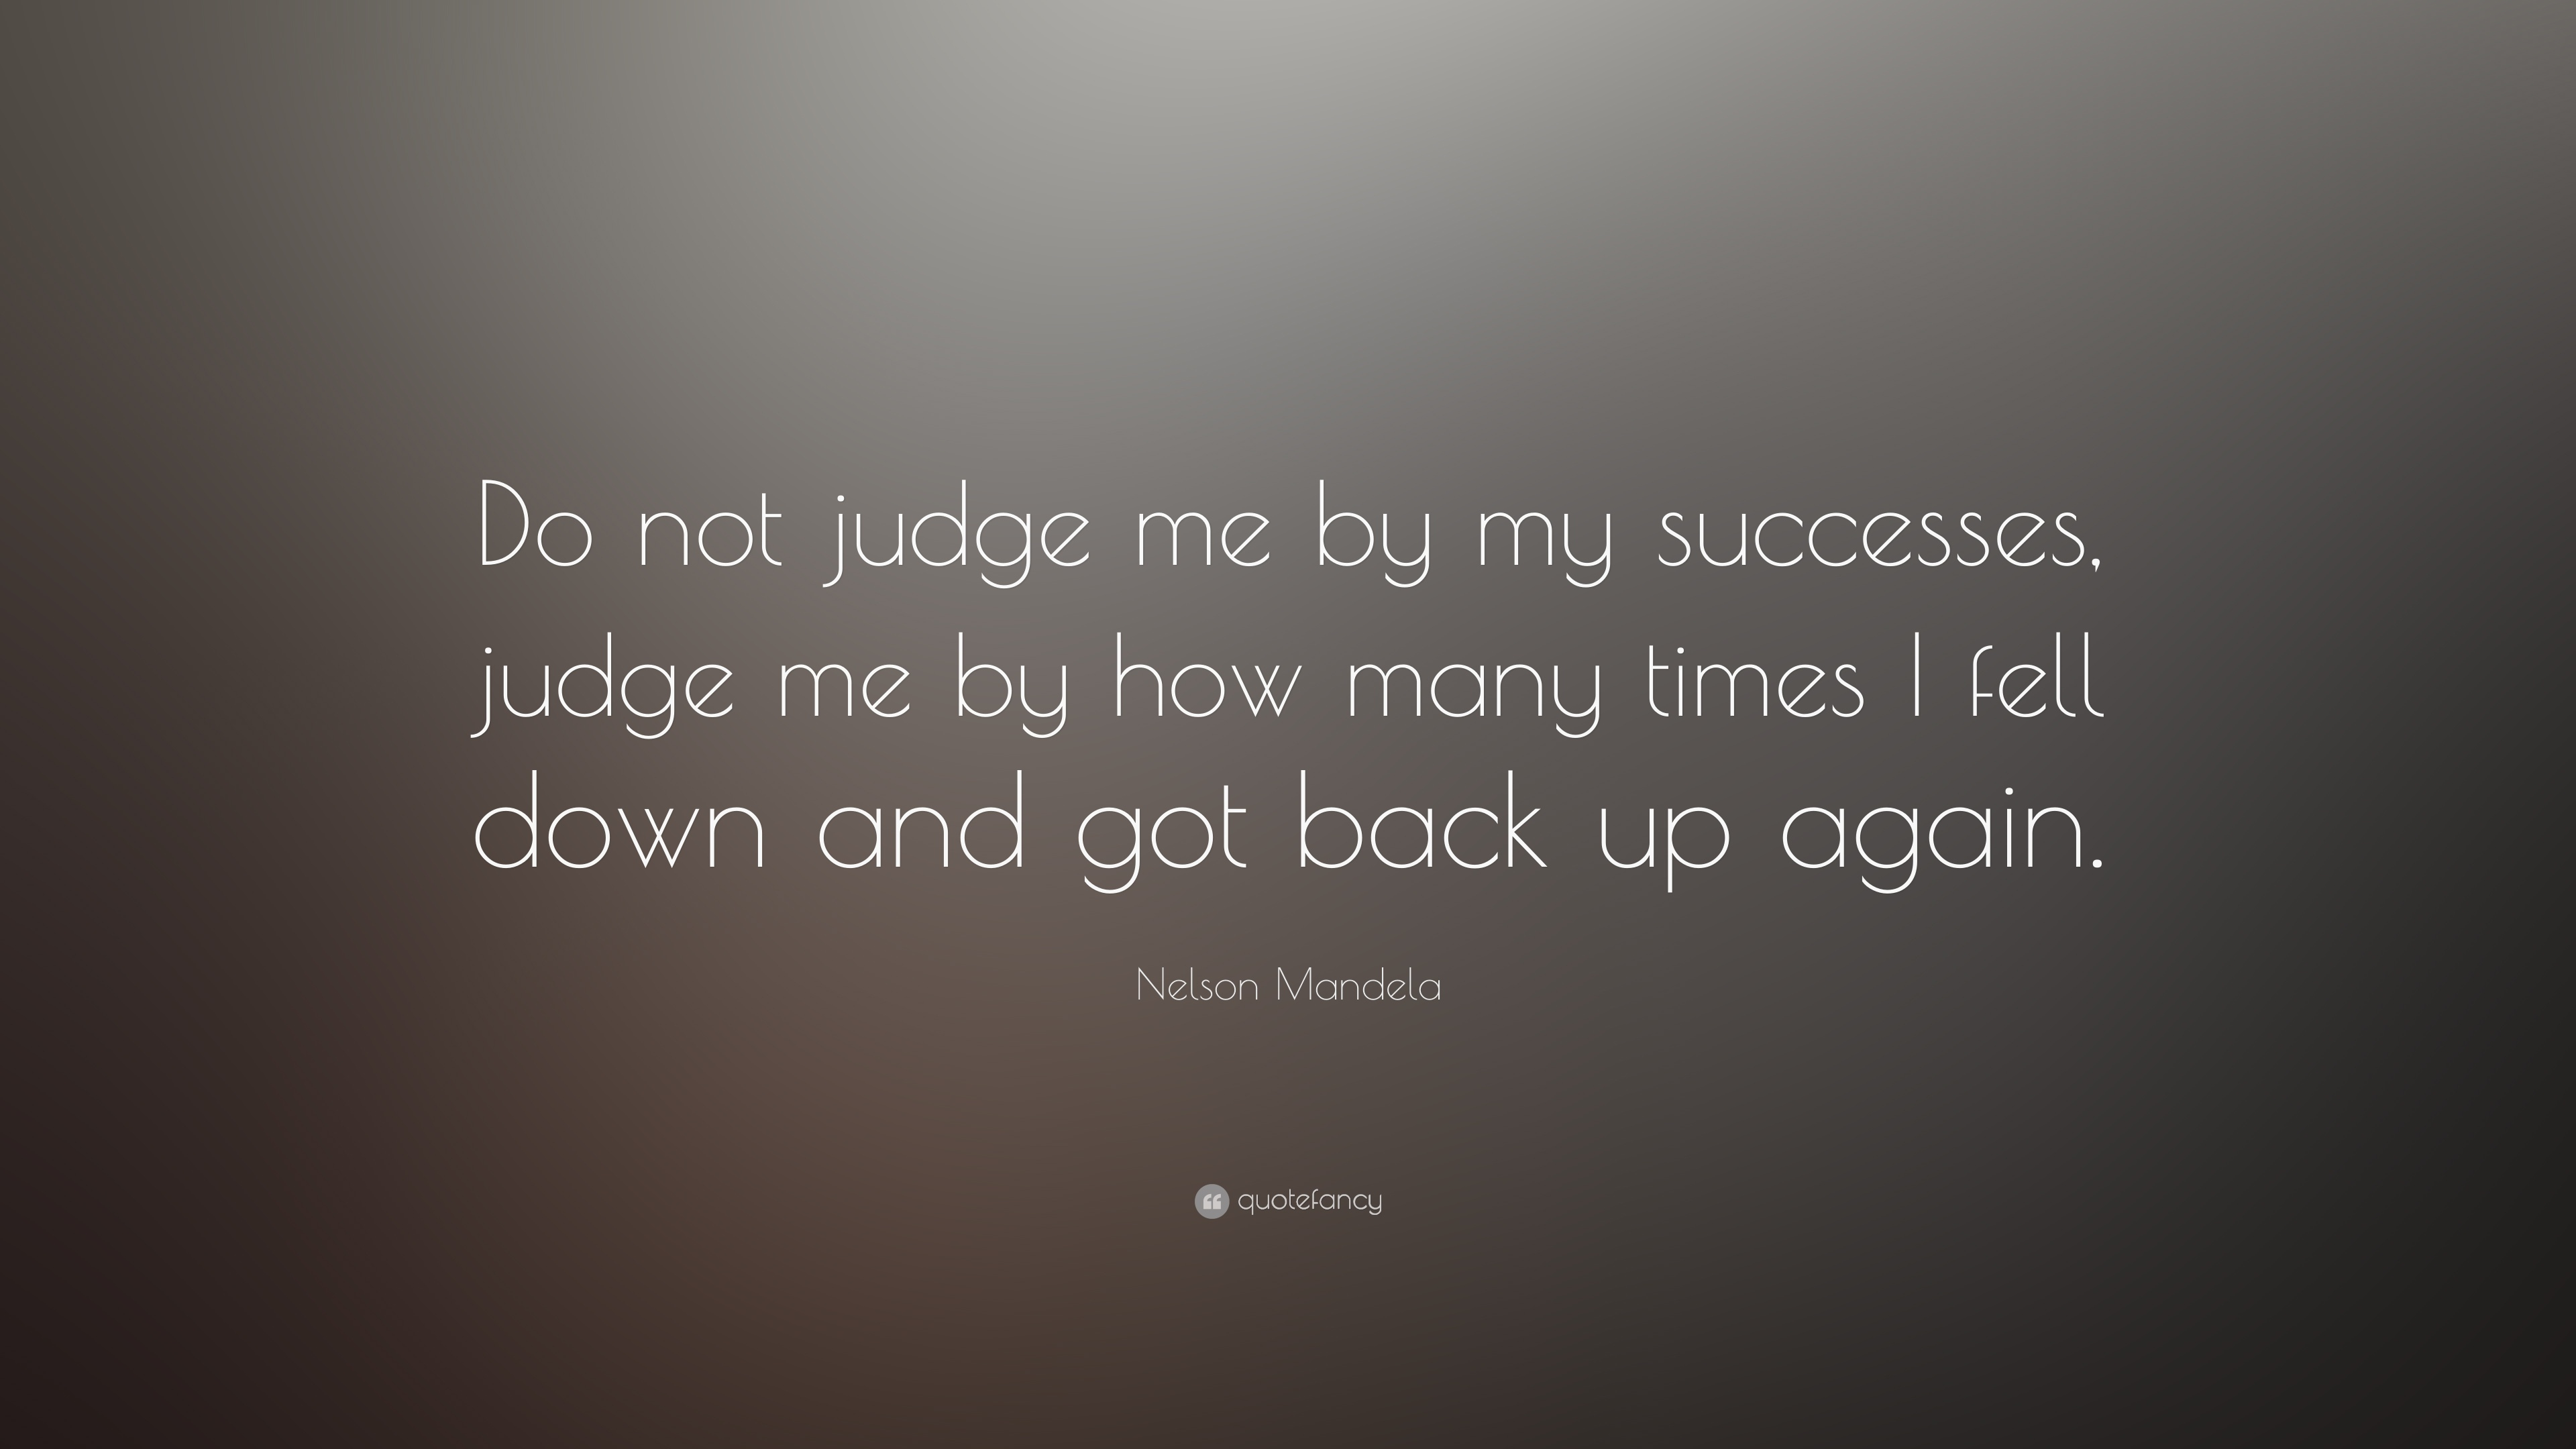 Success Quotes do not judge me by my successes judge me by how many times i fell down and got back up